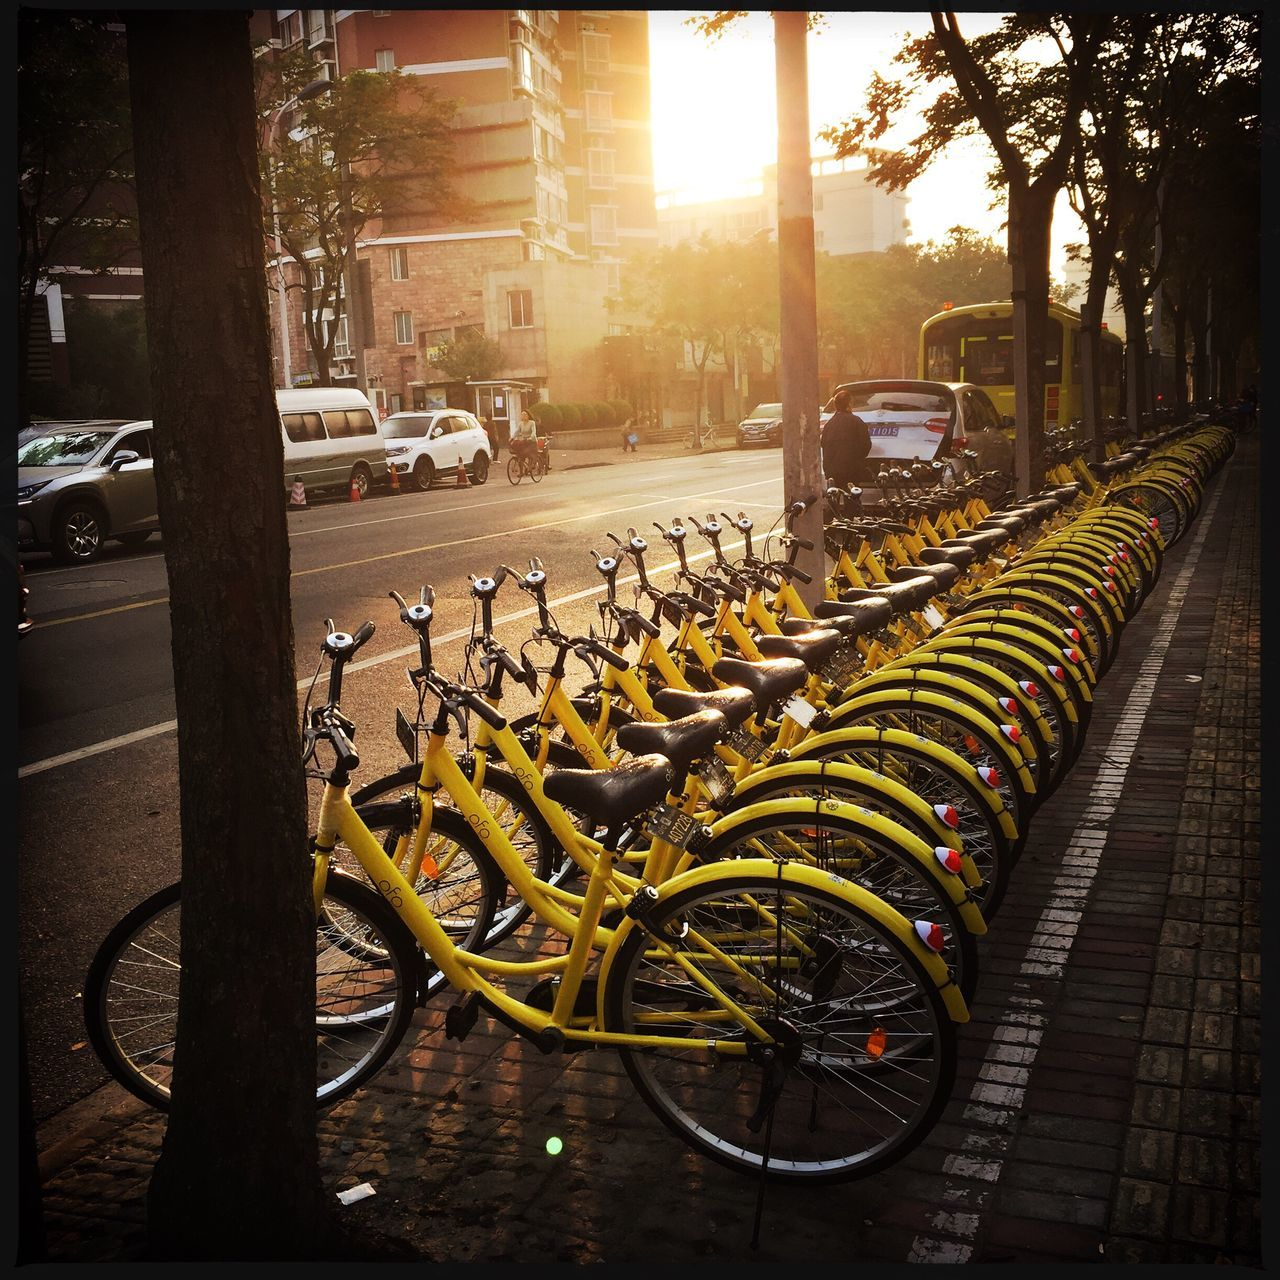 bicycle, transportation, mode of transport, land vehicle, in a row, stationary, parking, bicycle rack, outdoors, car, yellow, day, no people, city, architecture, tree